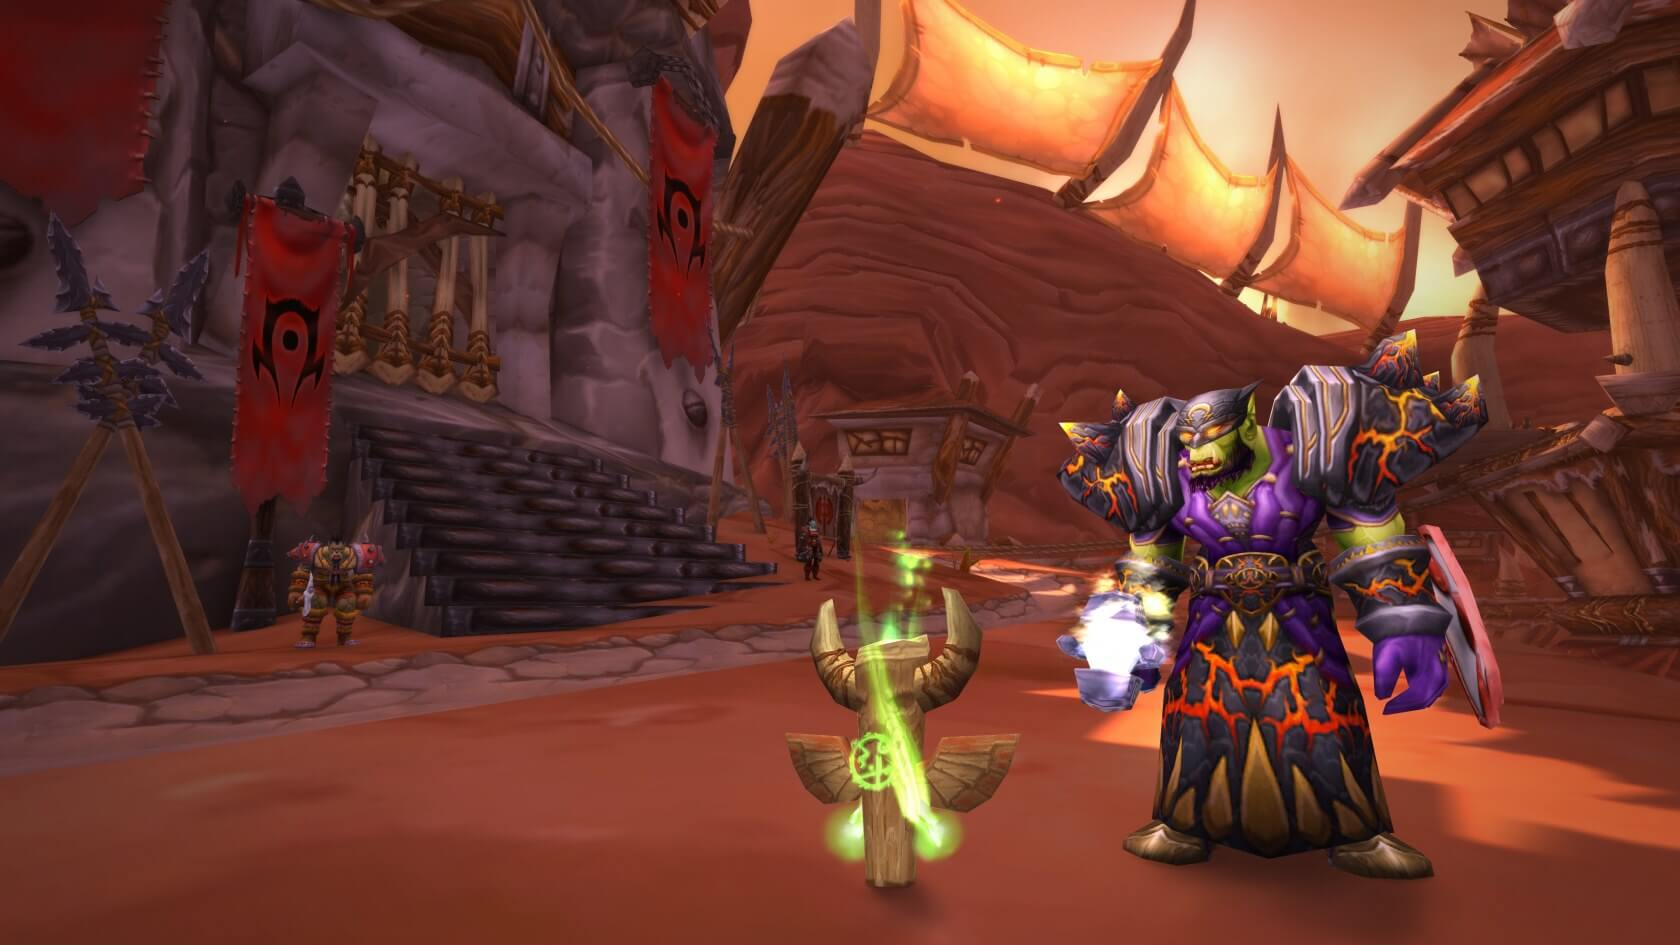 World of Warcraft Classic is one of the most popular games on Twitch